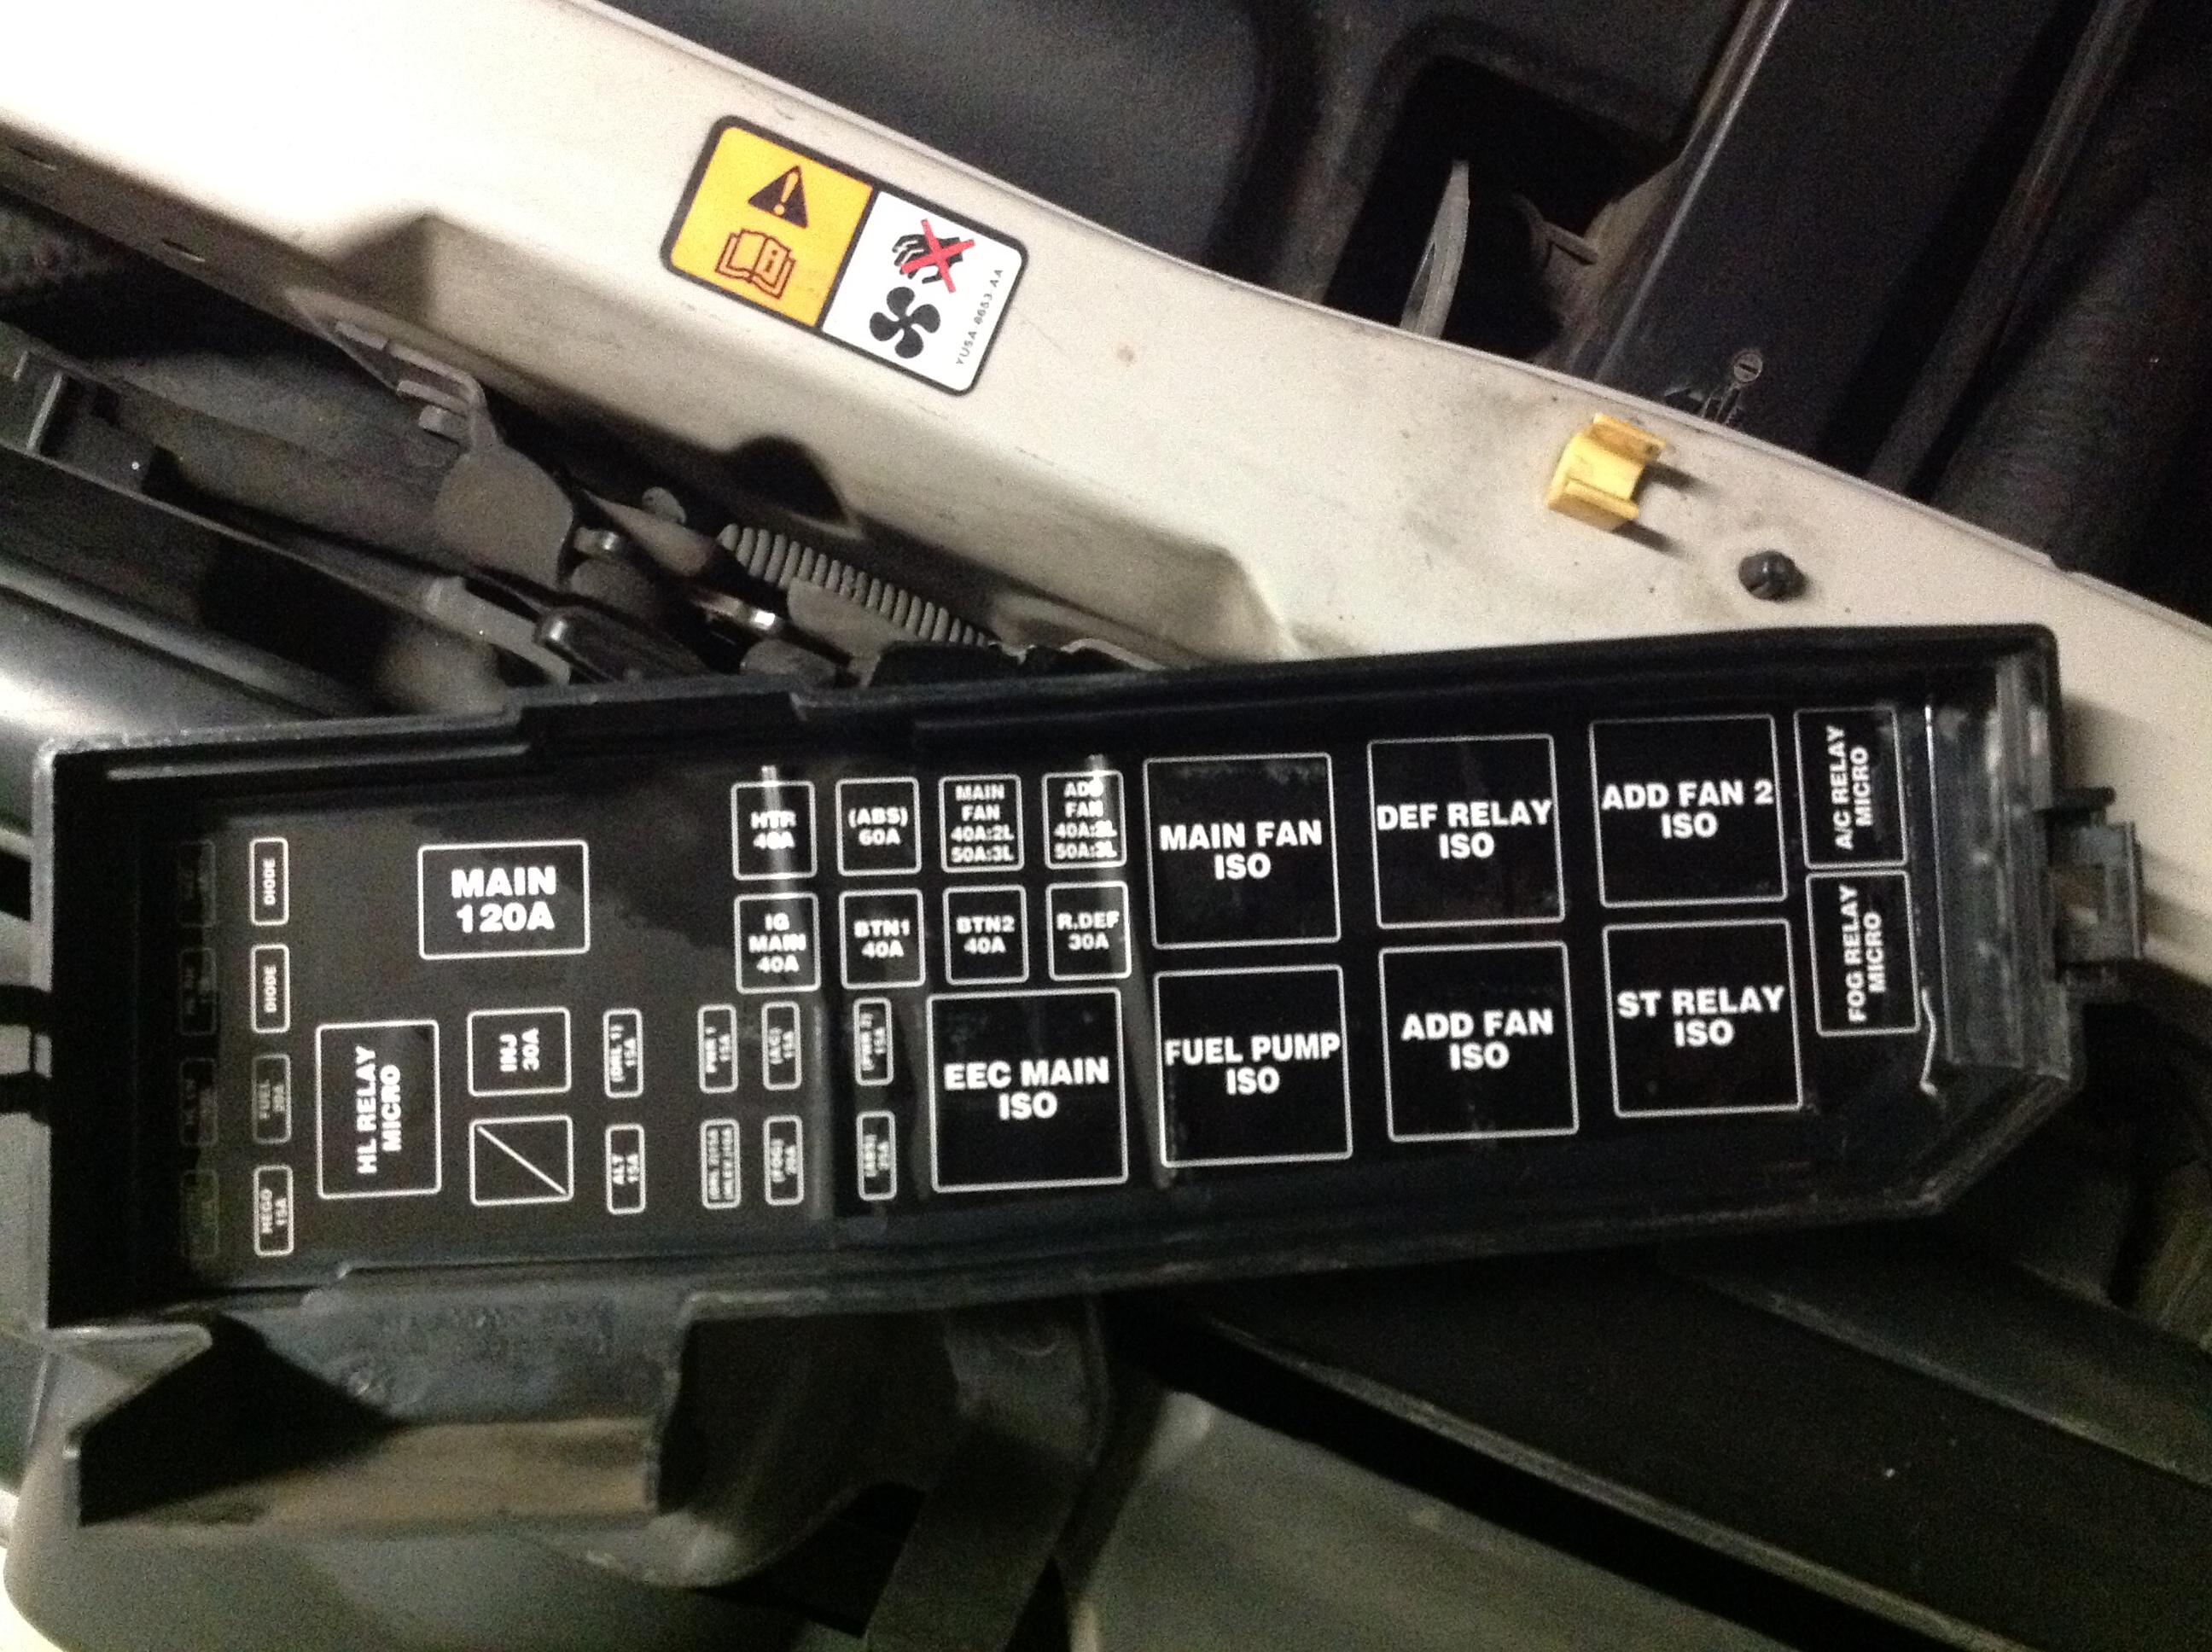 Mazda 3 Interior Fuse Box Diagram